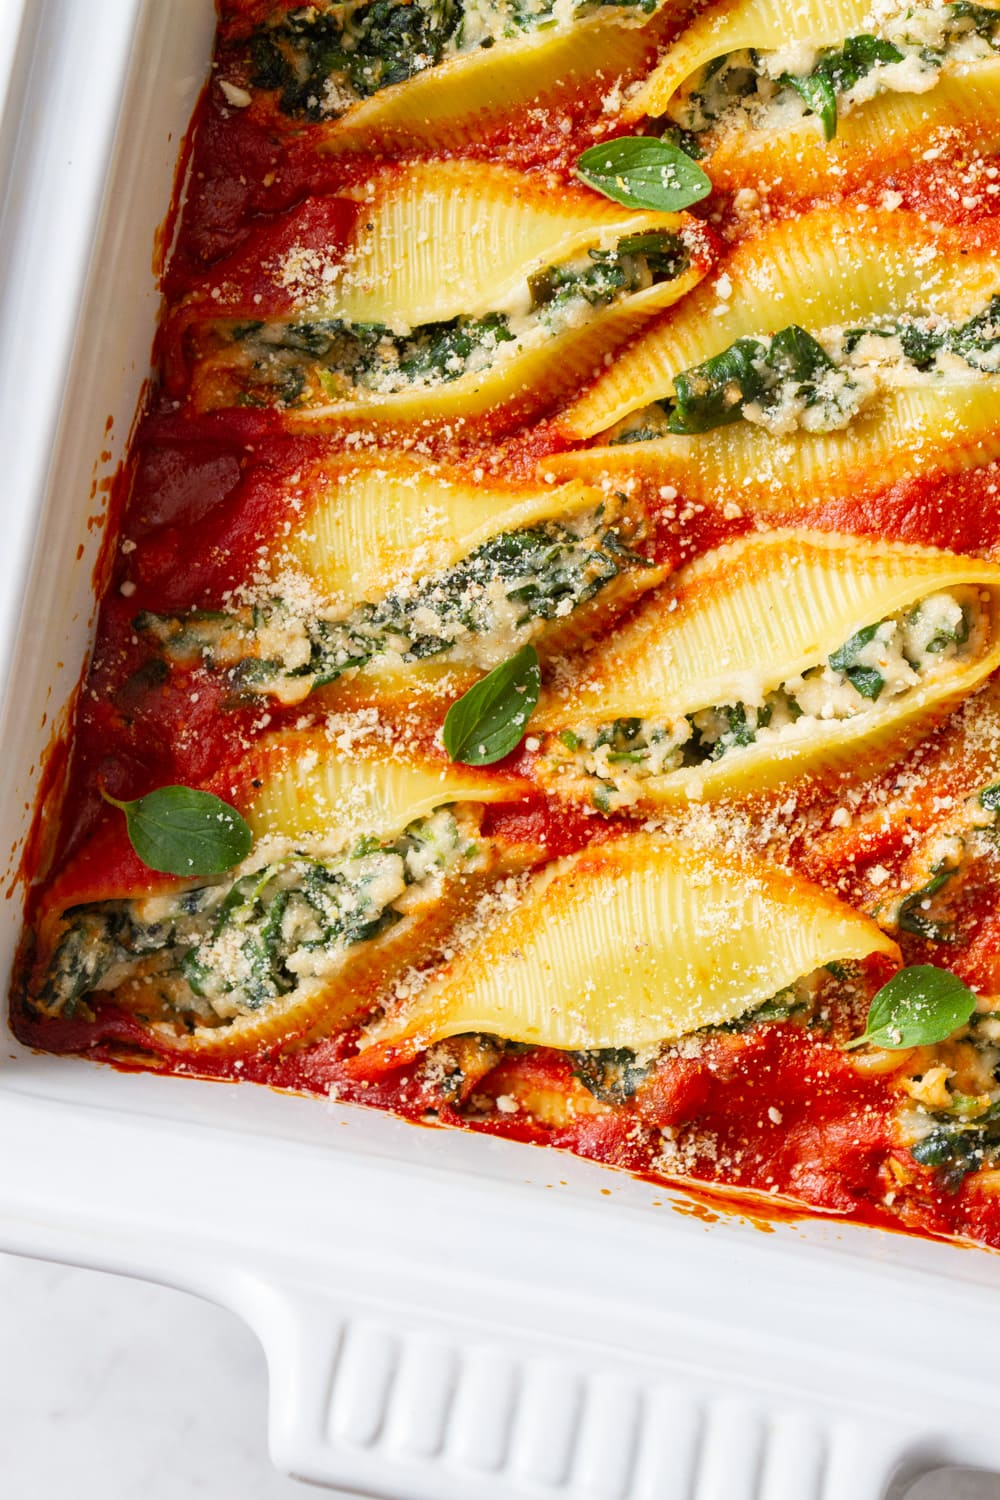 spinach-ricotta stuffed shells in a baking dish just pulled from the oven